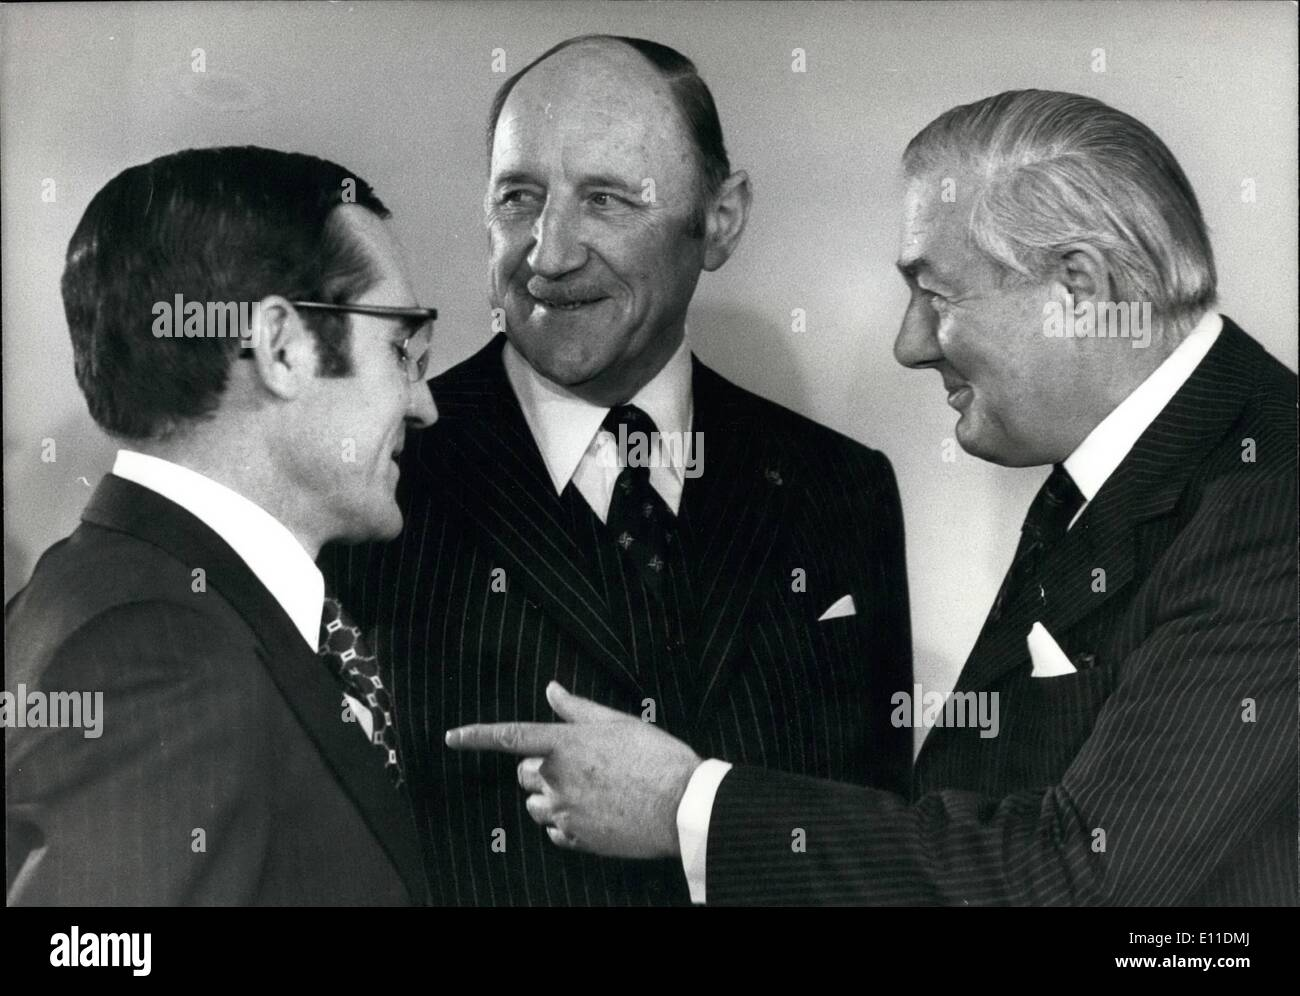 May 05, 1977 - Ministerial Meeting of North Atlantic Treaty Organization London - Photo Shows : Seen during the Stock Photo